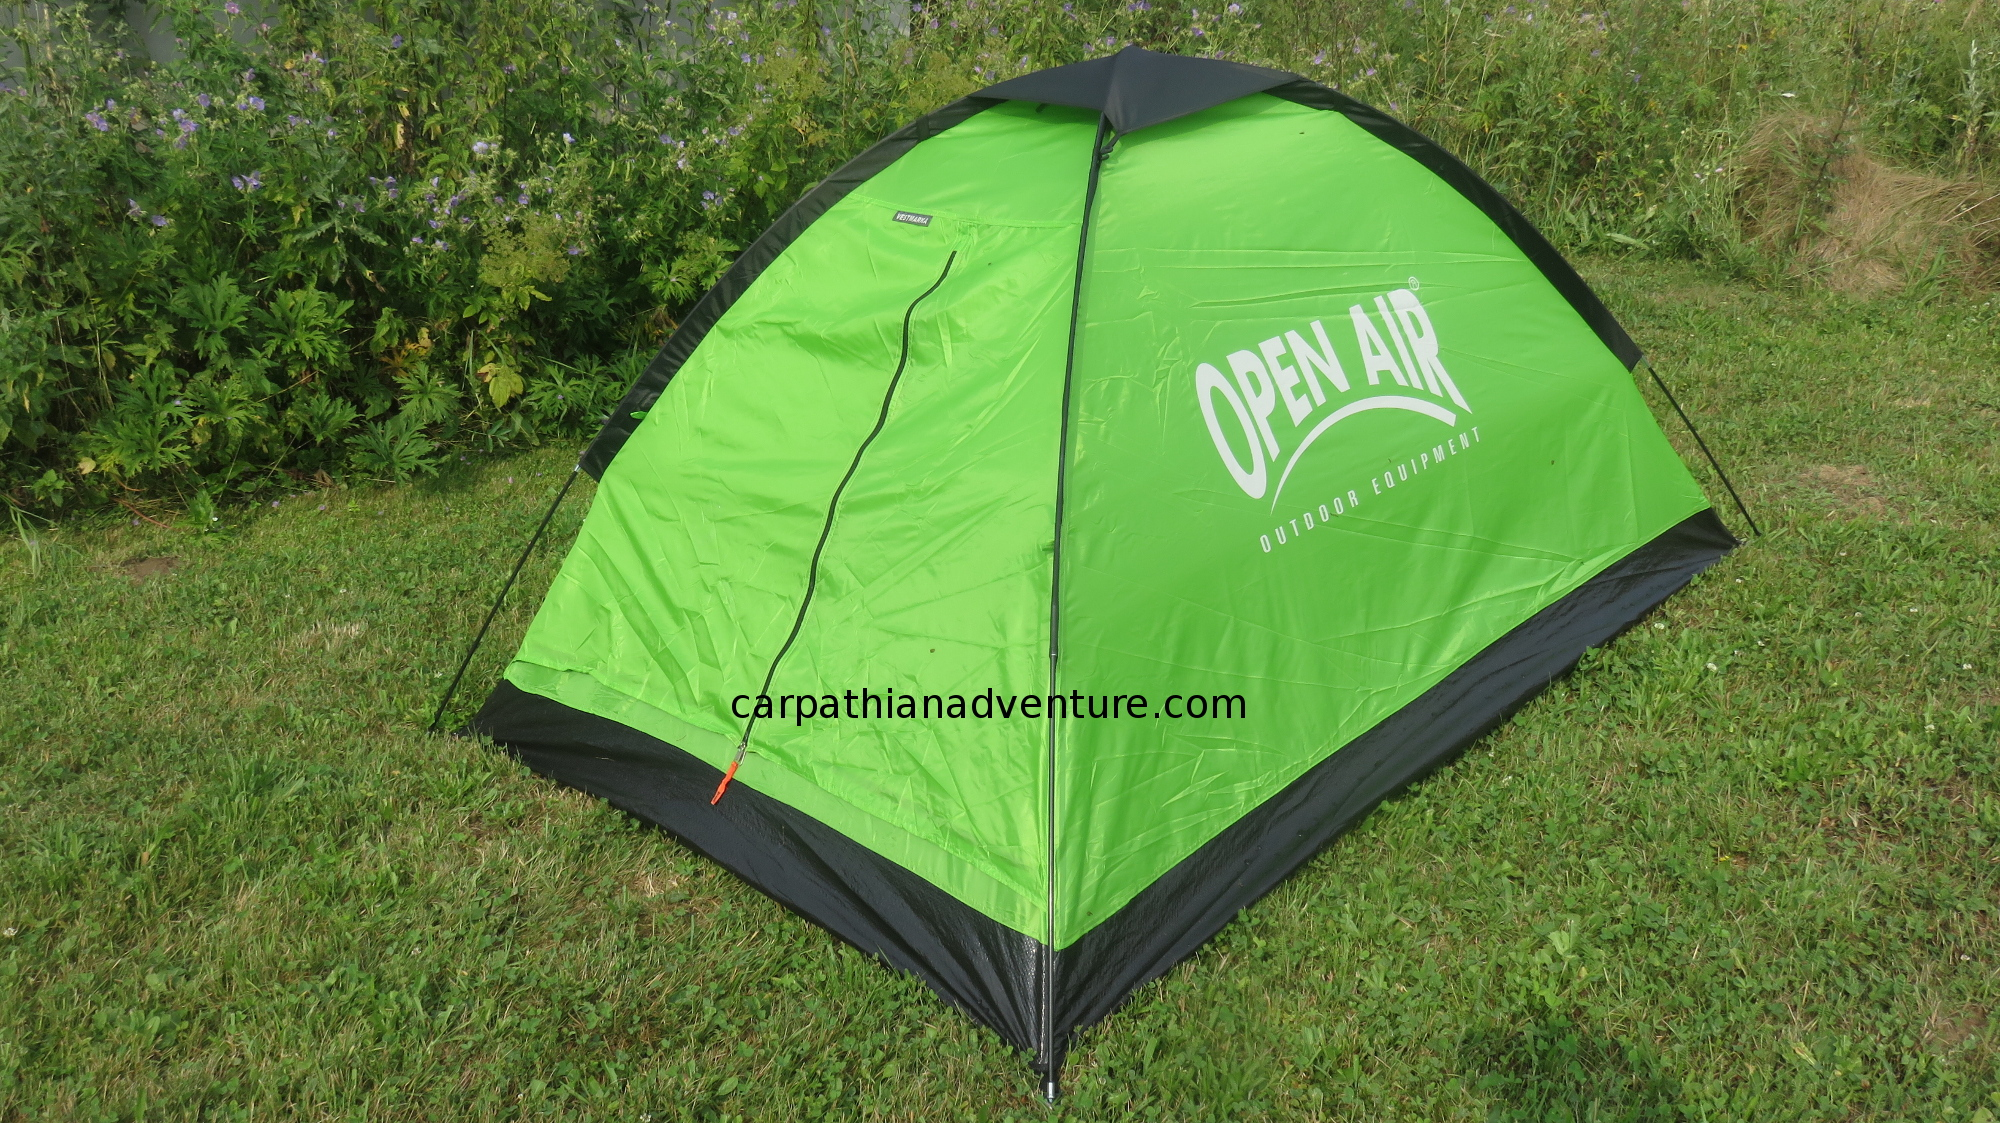 Jysk Tent Open Air Vestmarka Tent Review Carpathian Adventure